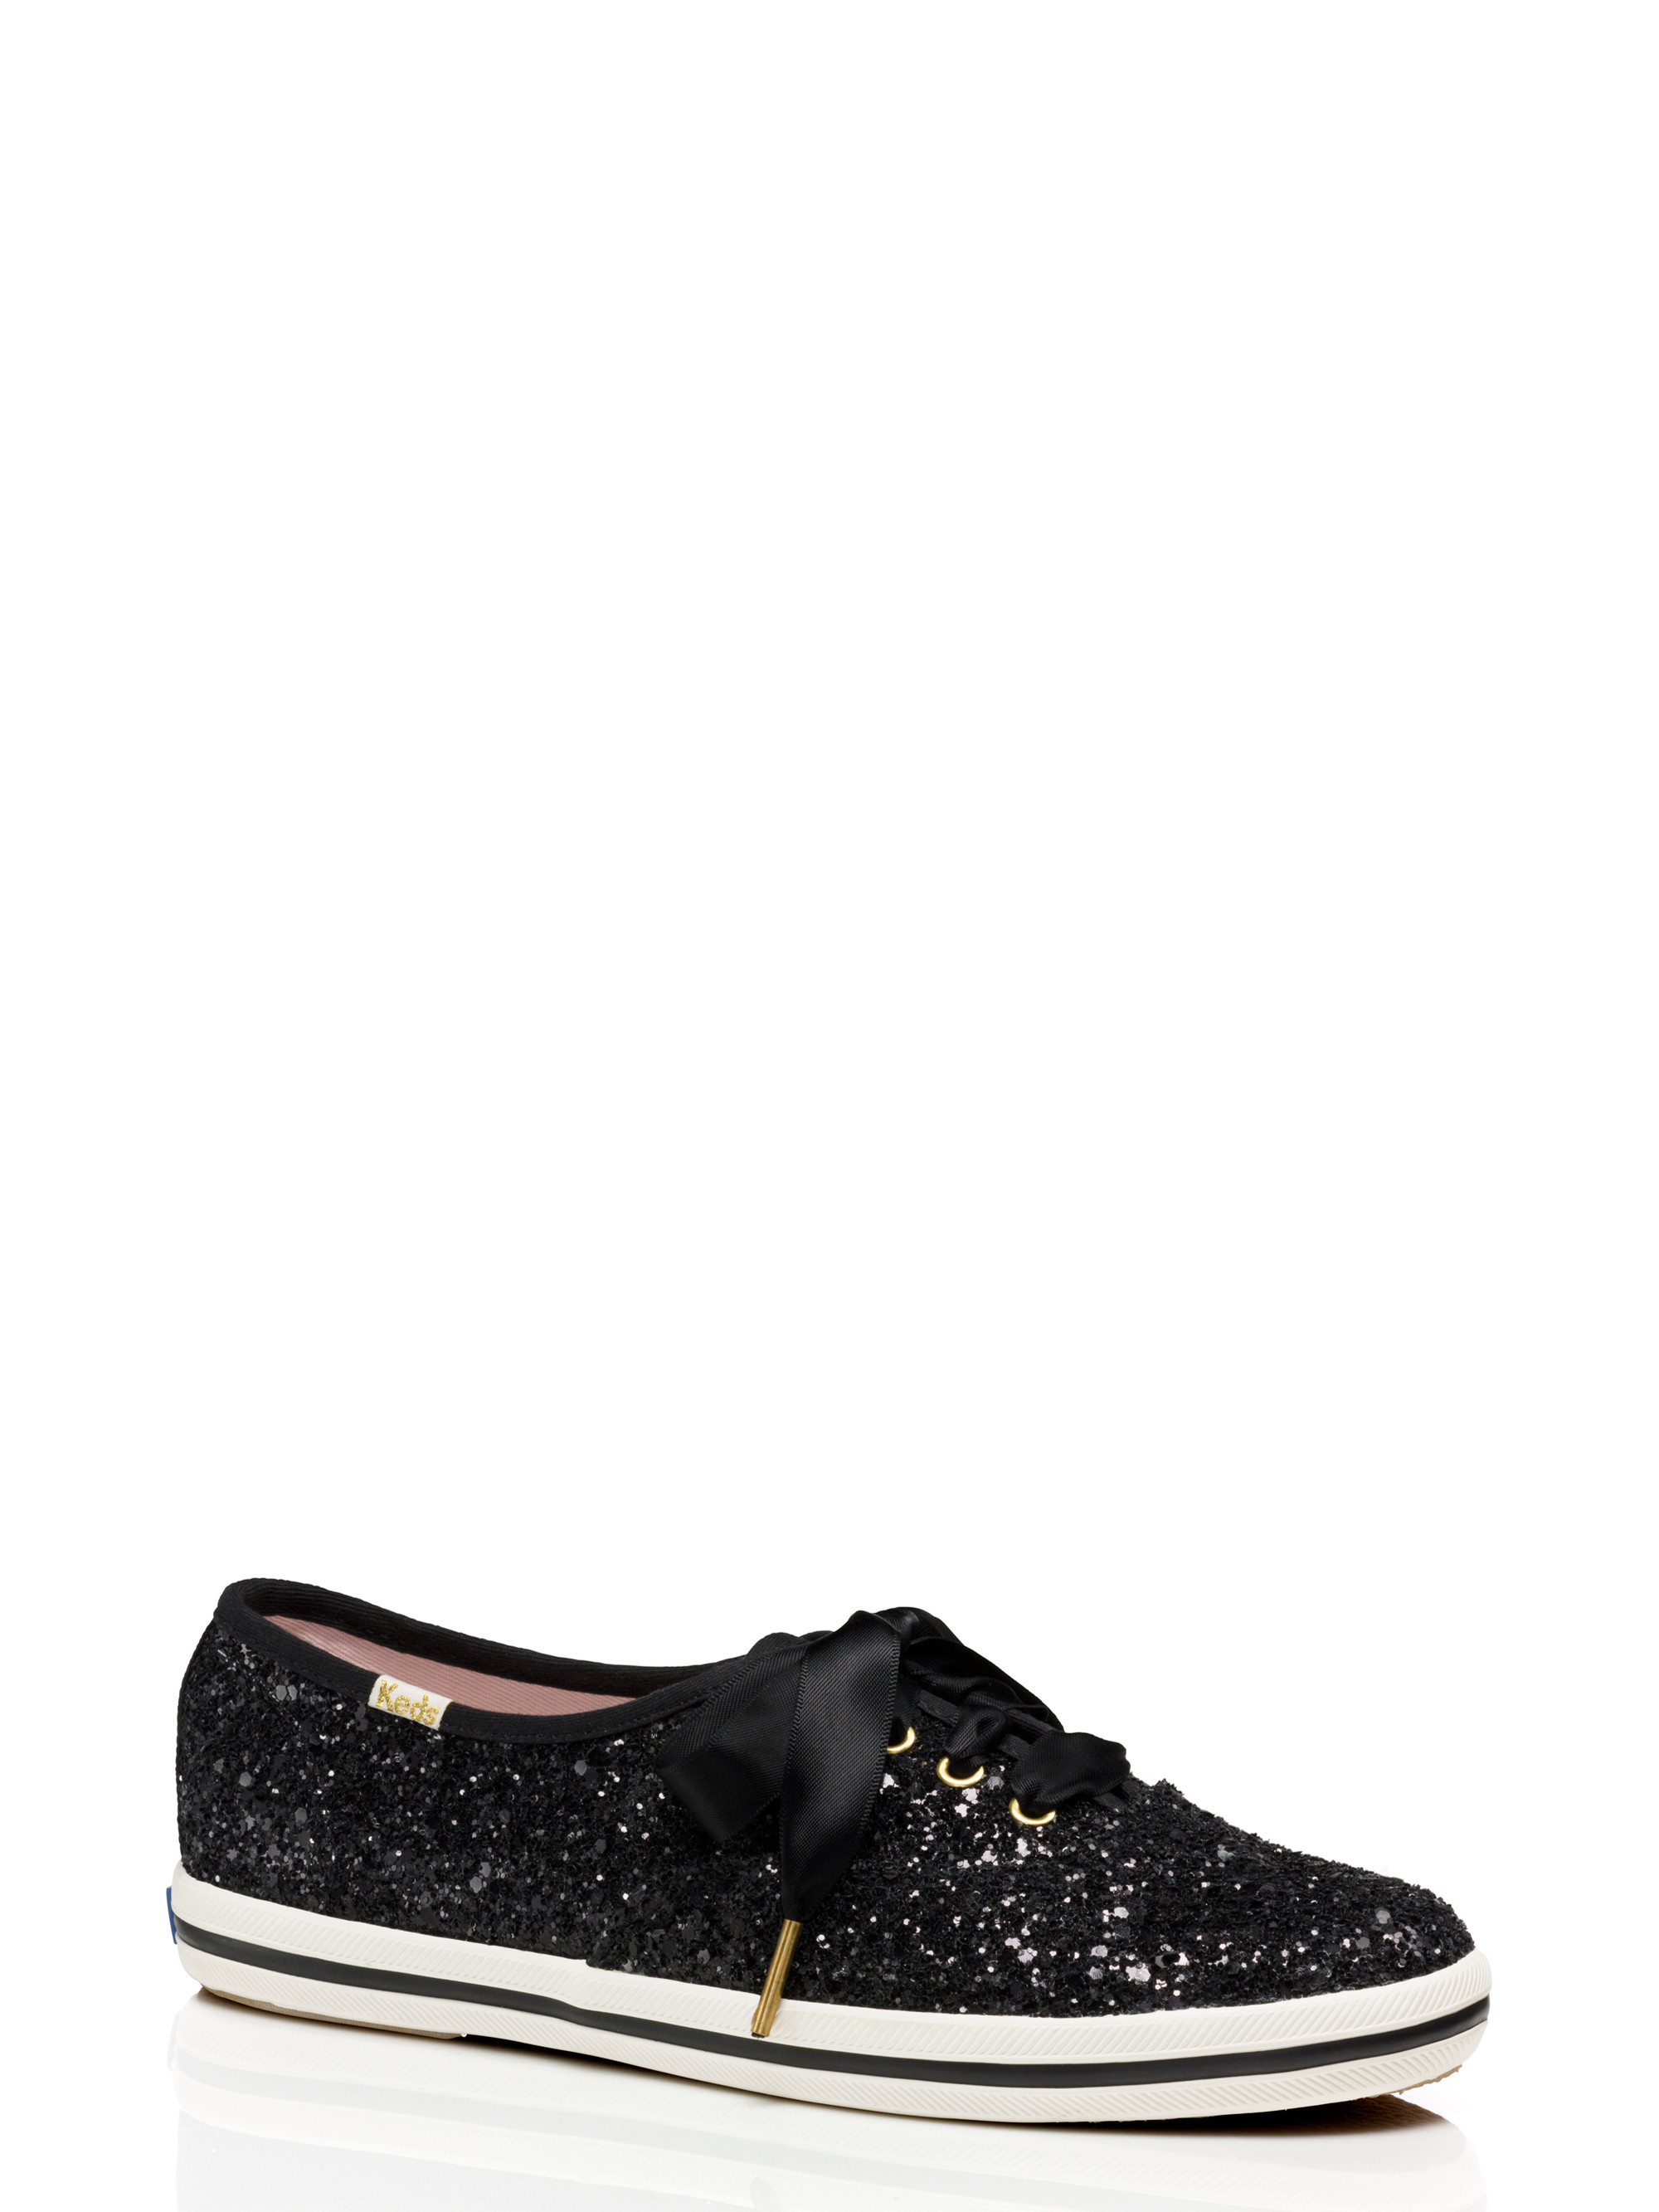 Kate Spade Tennis Shoes With Lace